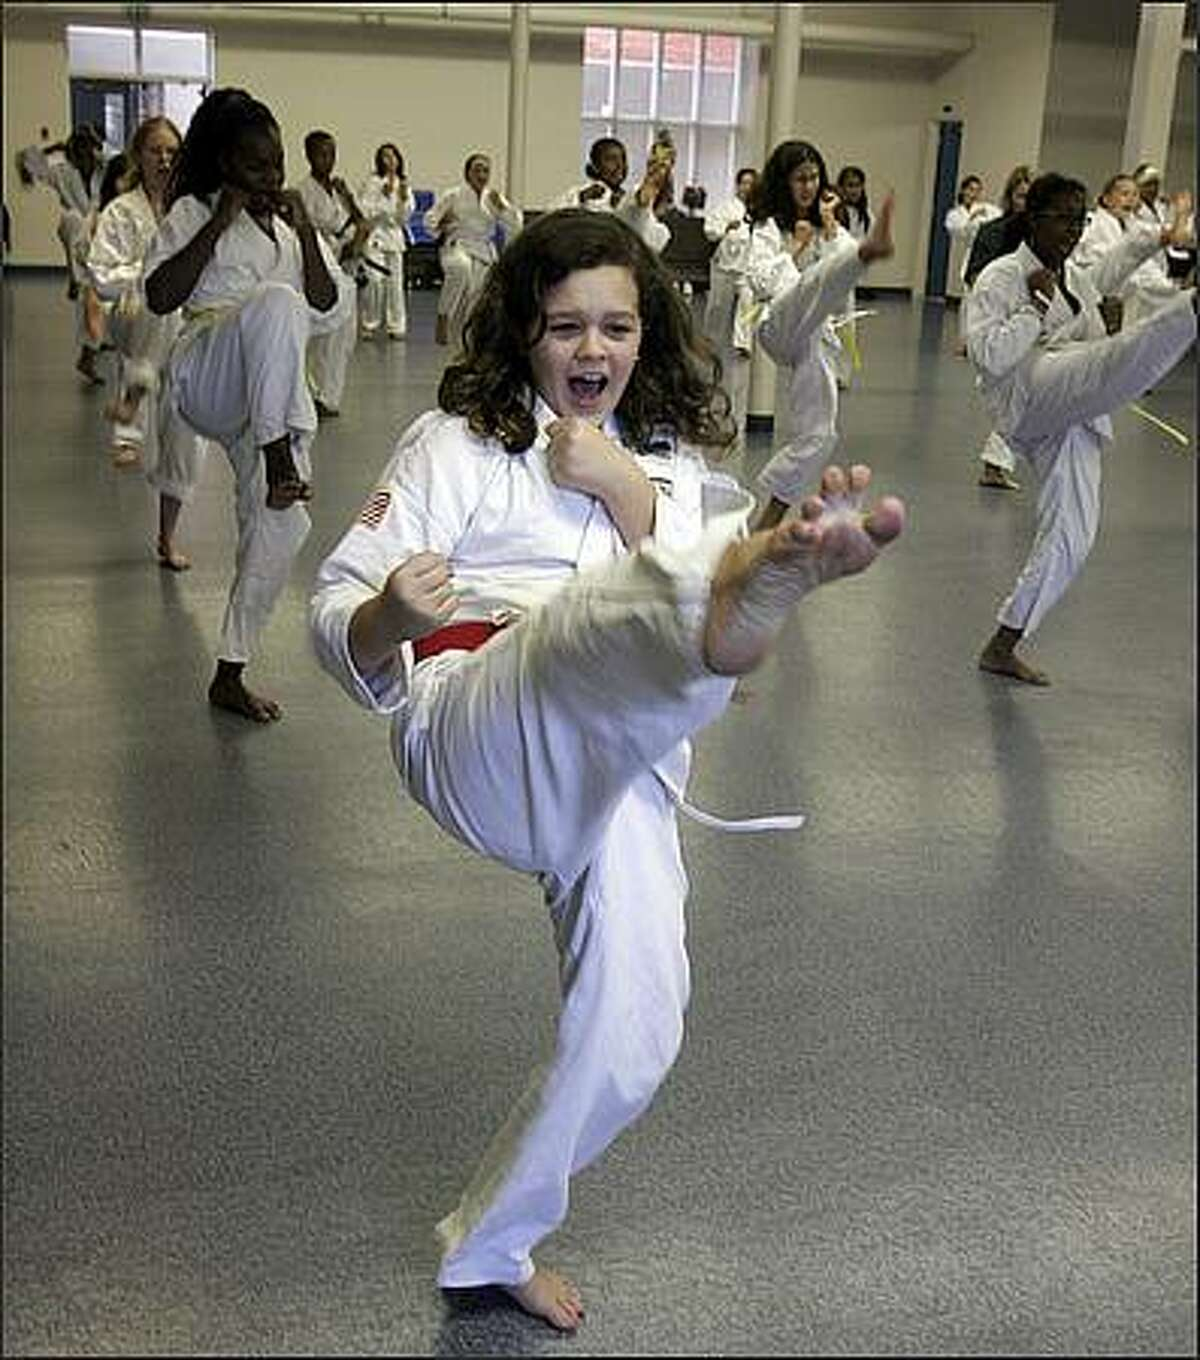 Seventh-grade student Cassandra Gill, who is now a junior black belt, practices with her classmates during gym class at Lake Washington Girls Middle School. Everyone is required to take one term of martial arts per year. Cassandra Gill: